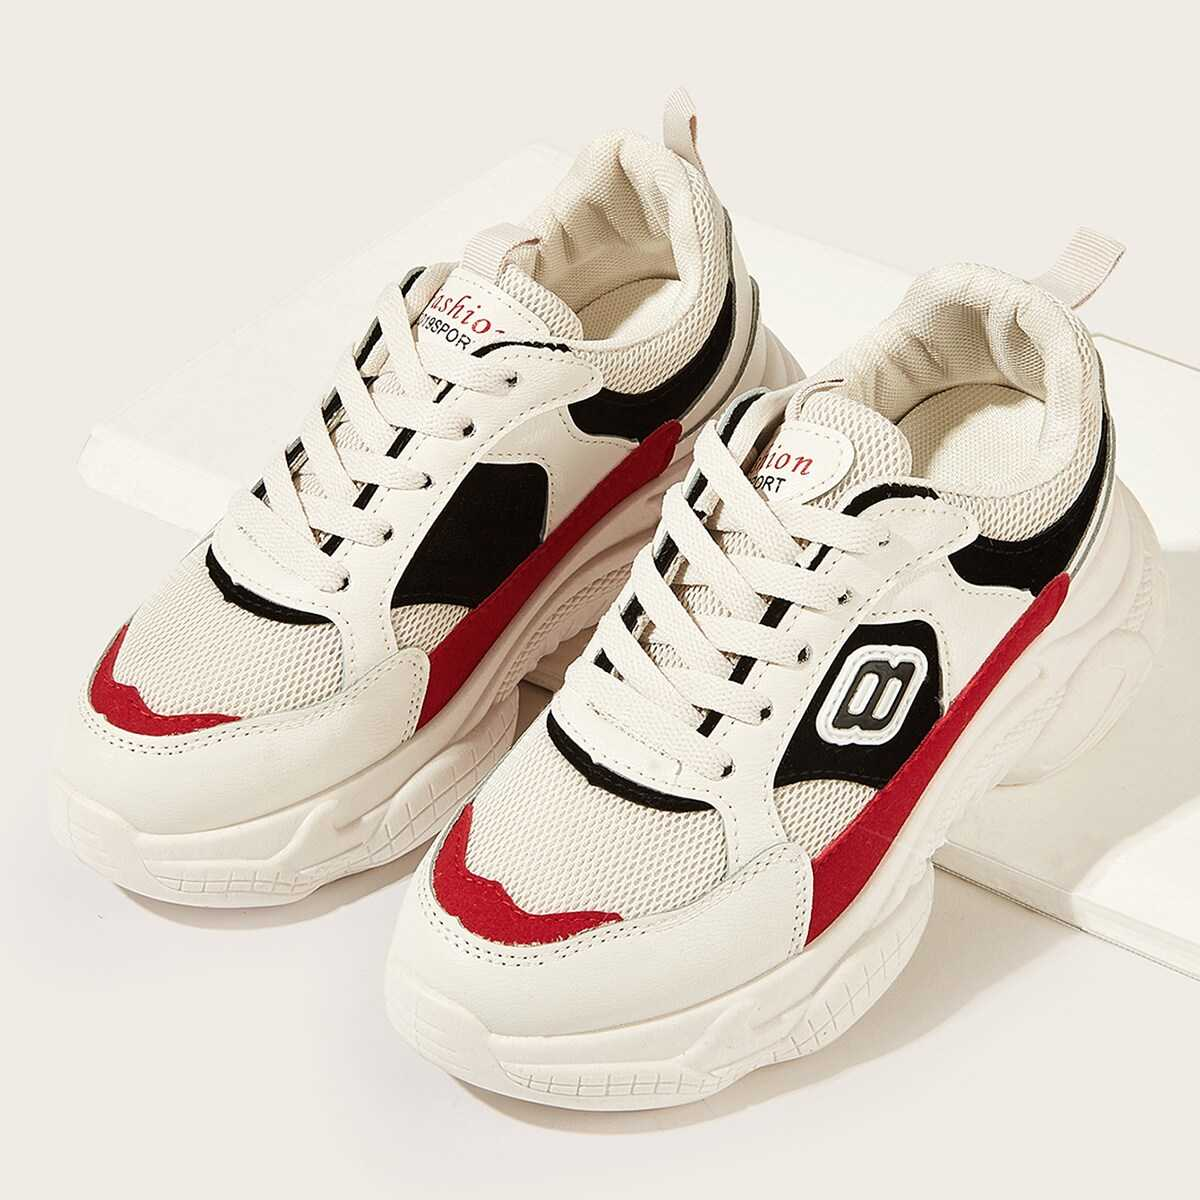 be2dca9485 Colorblock Lace-up Sneakers Shein   GOOFASH SHOP